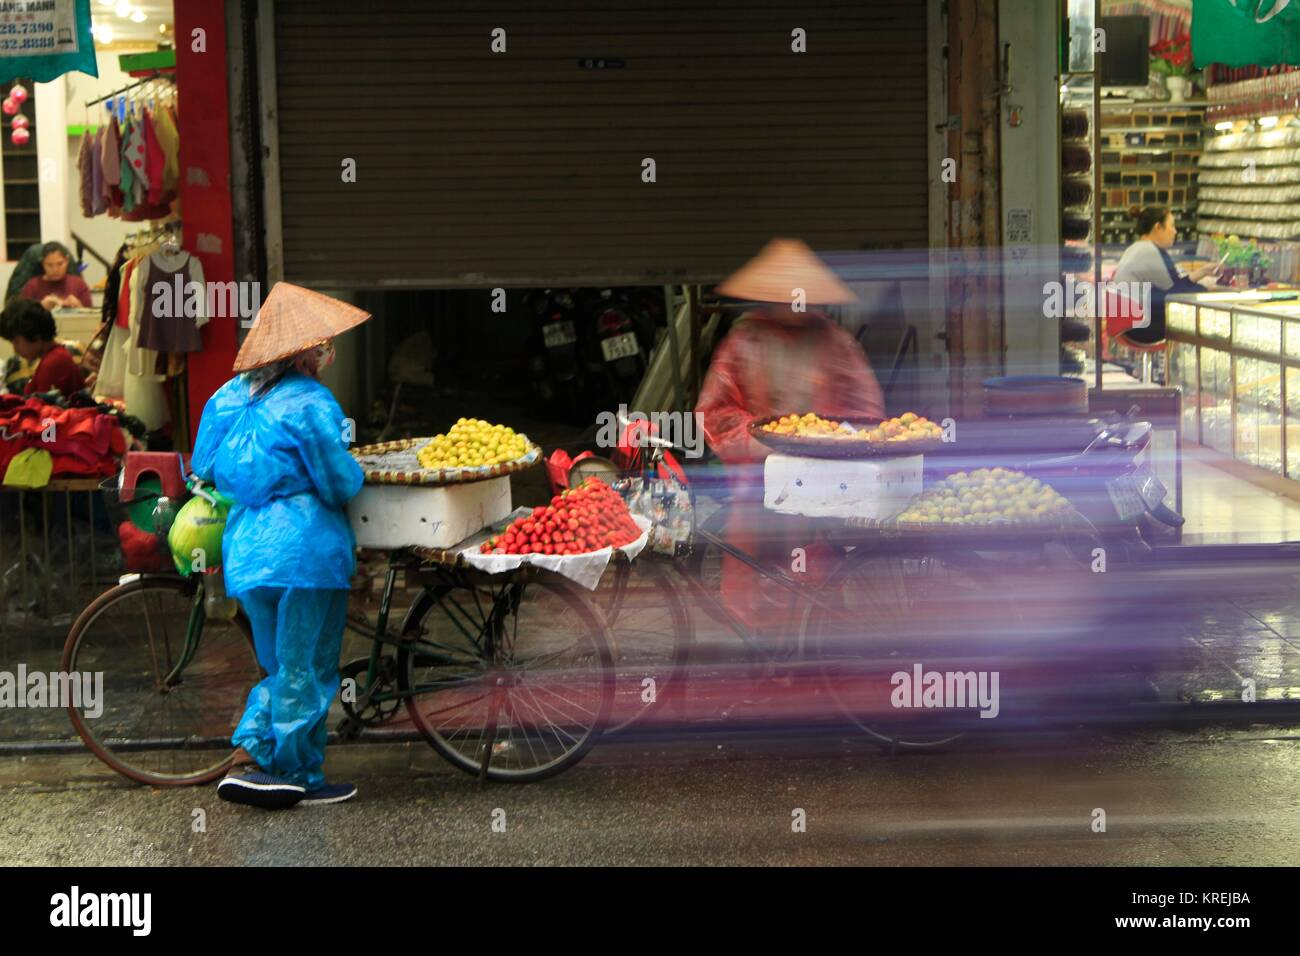 Motorbike blur obscuring bike fruit sellers in rain ponchos discussing strategy on a soggy day in the streets of - Stock Image